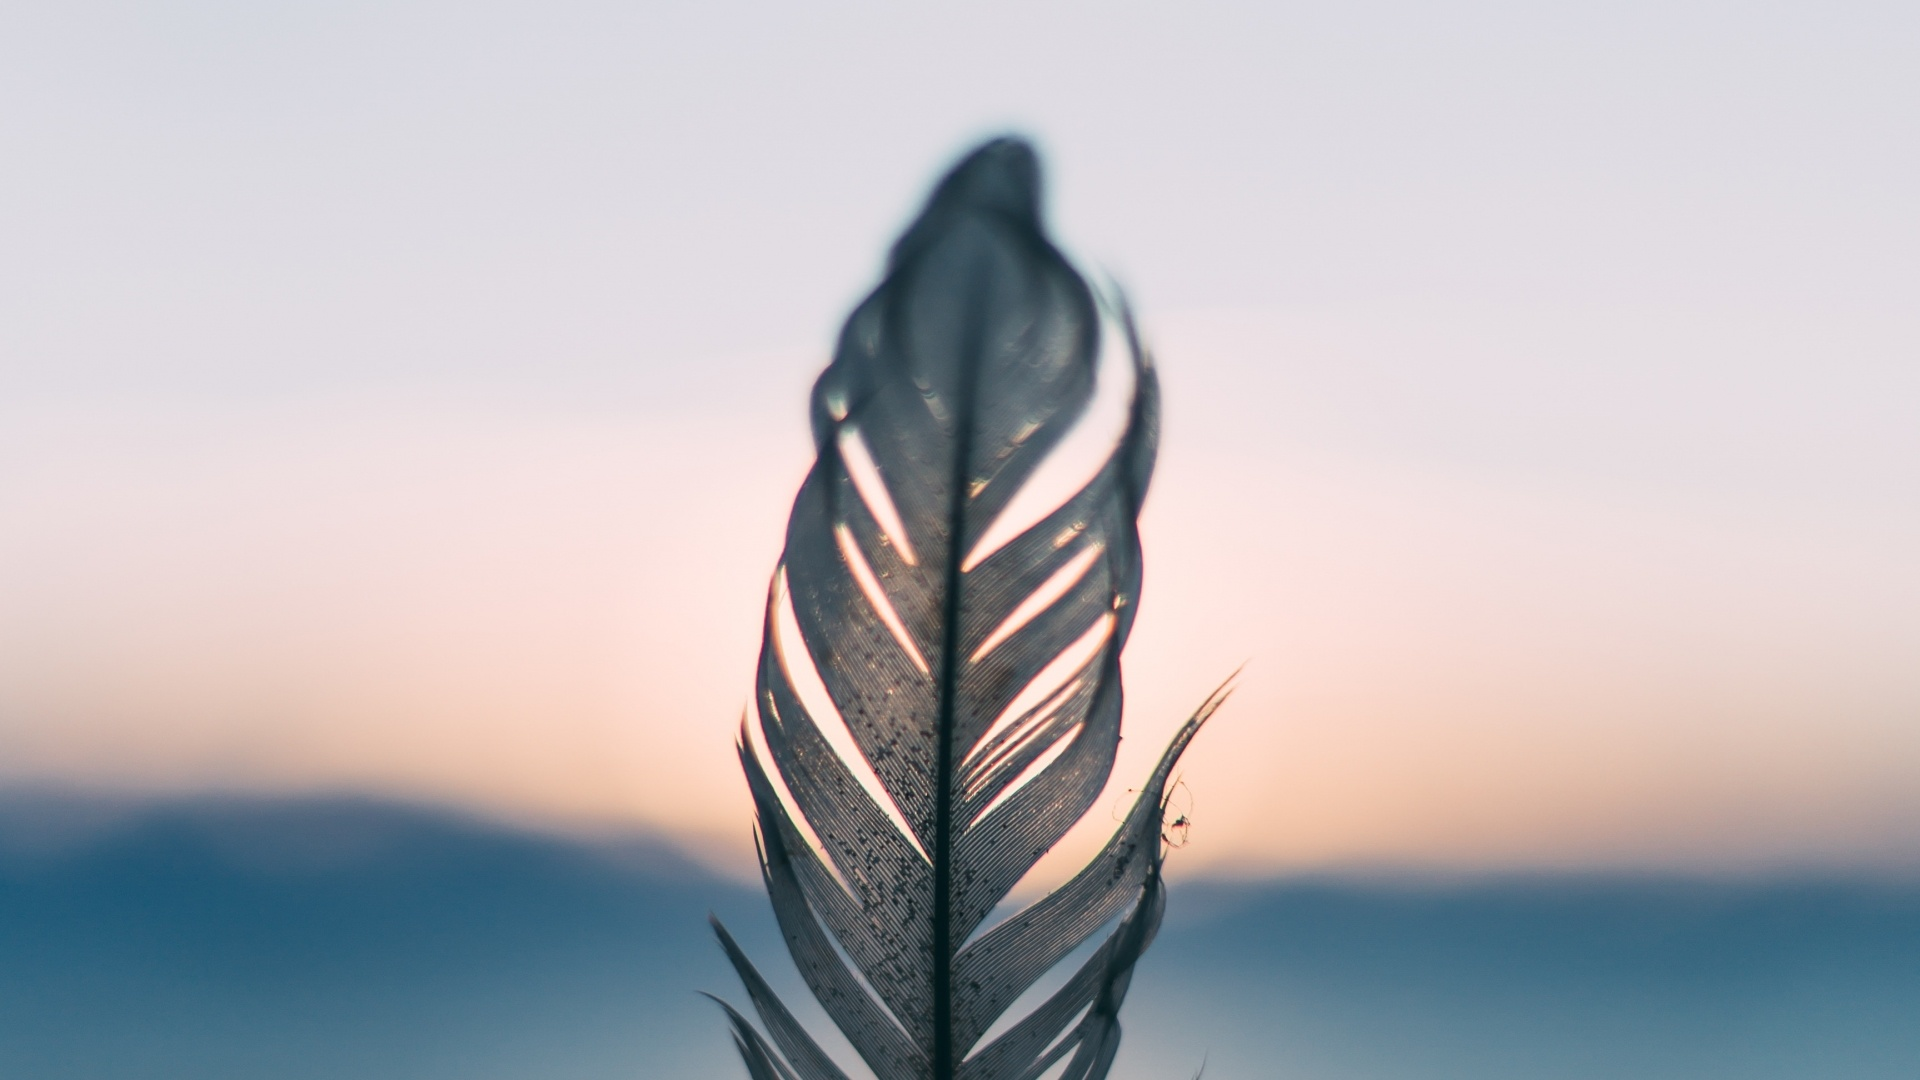 Feathers Wallpaper theme